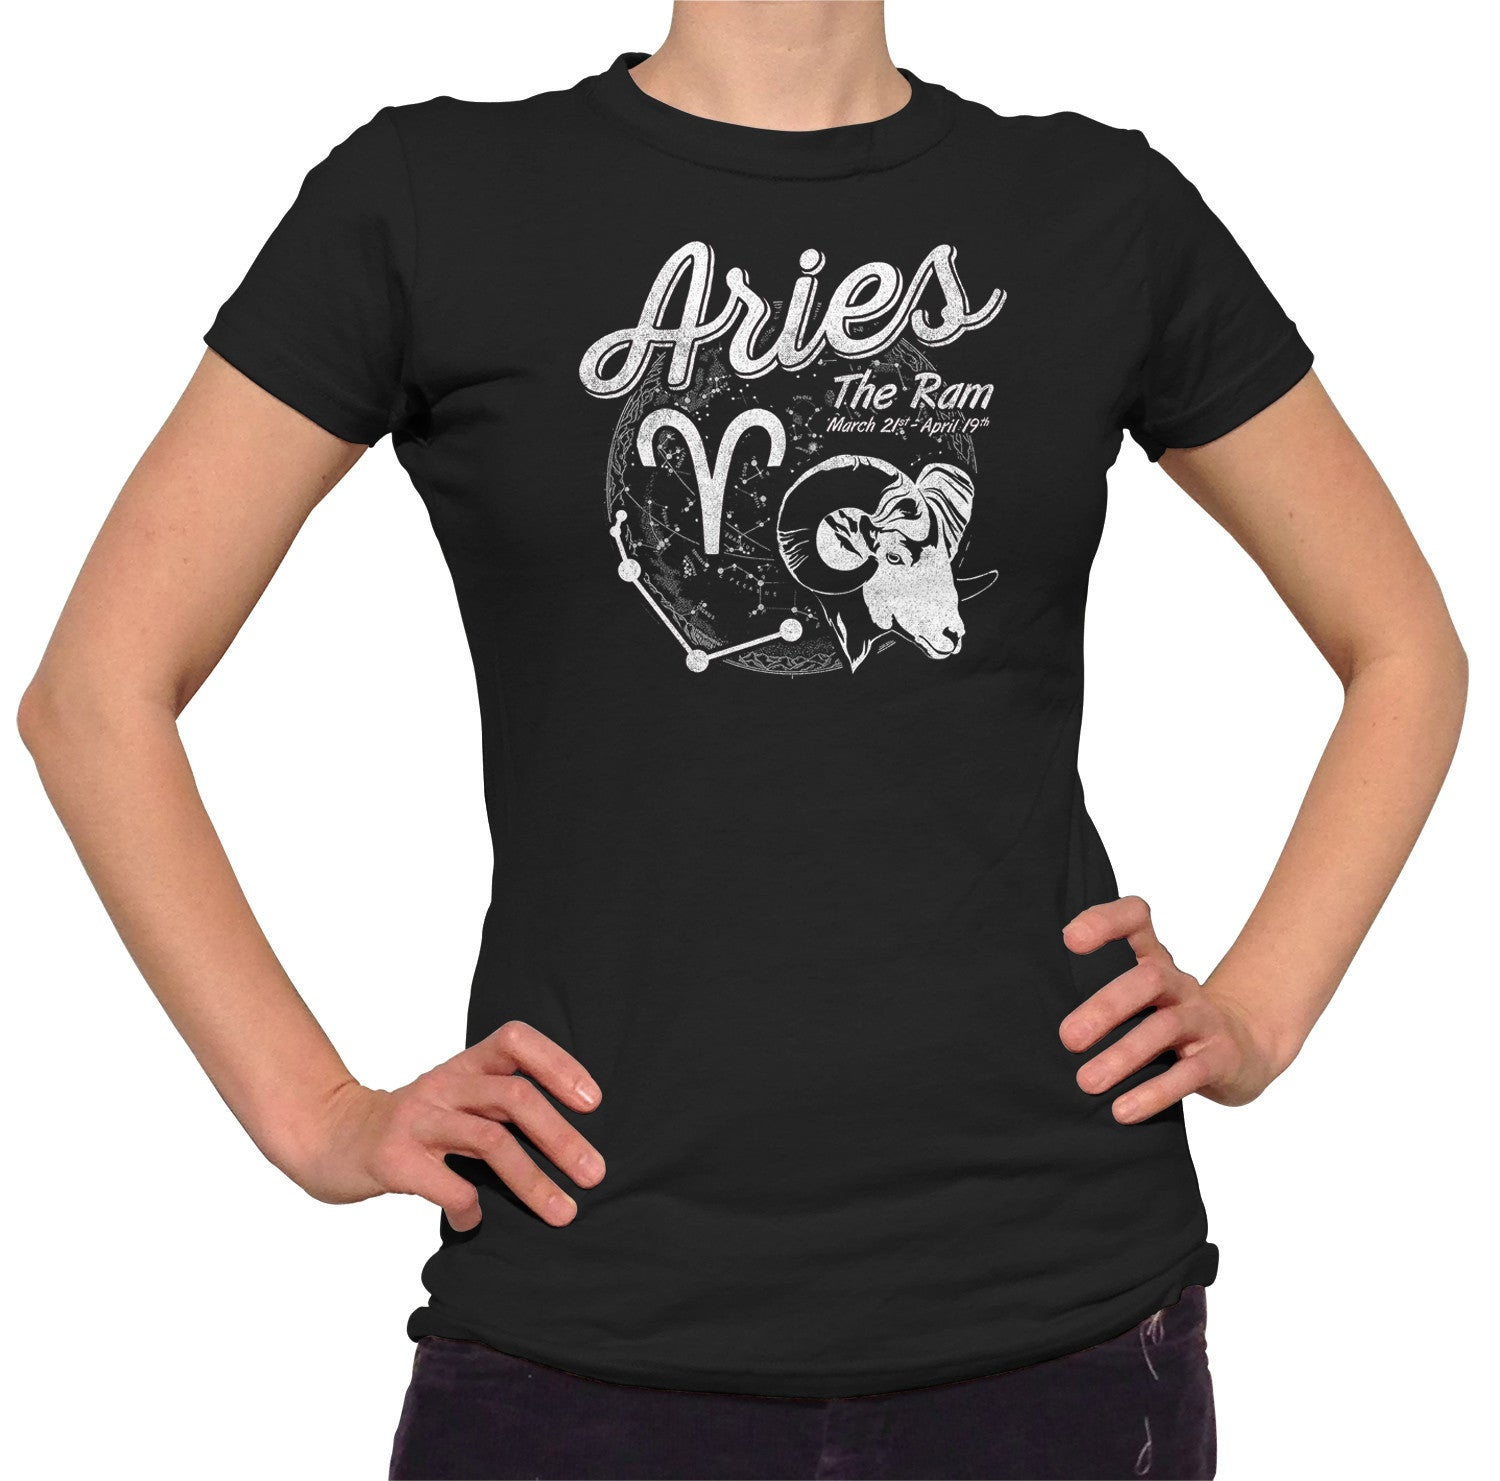 Women's Vintage Aries T-Shirt